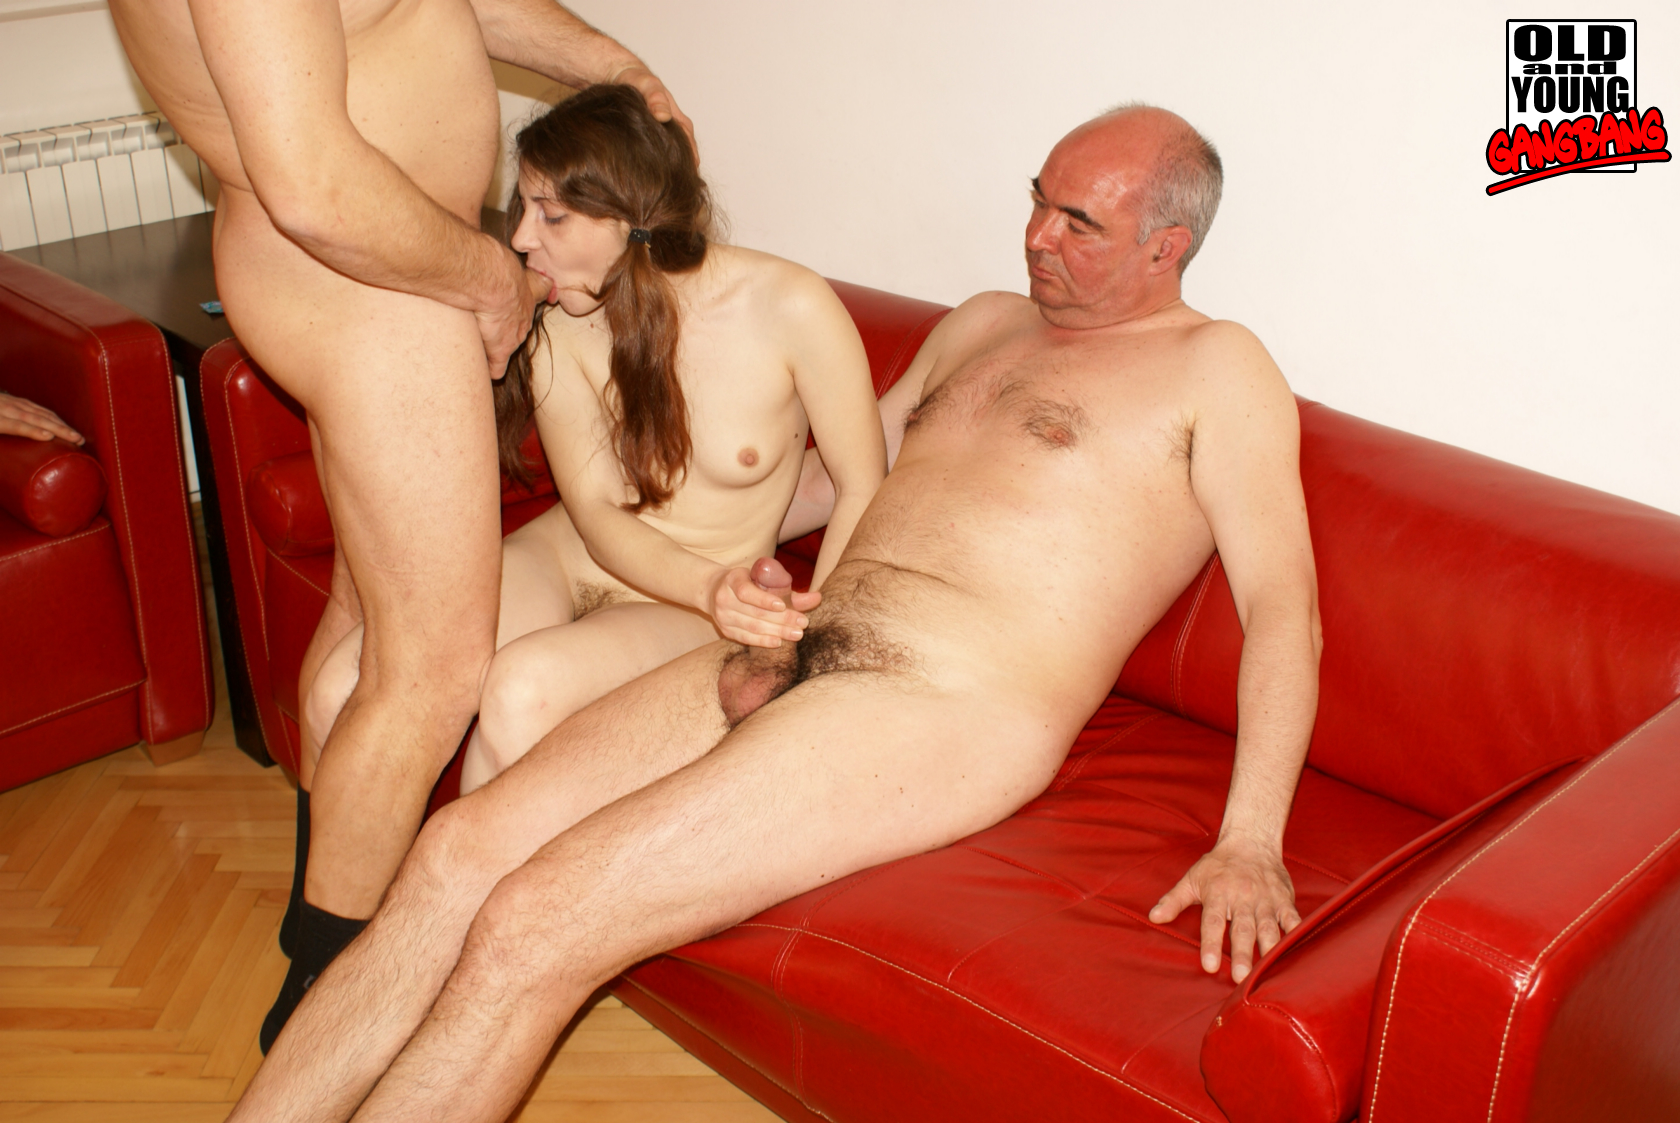 Watch amateur couples fucking